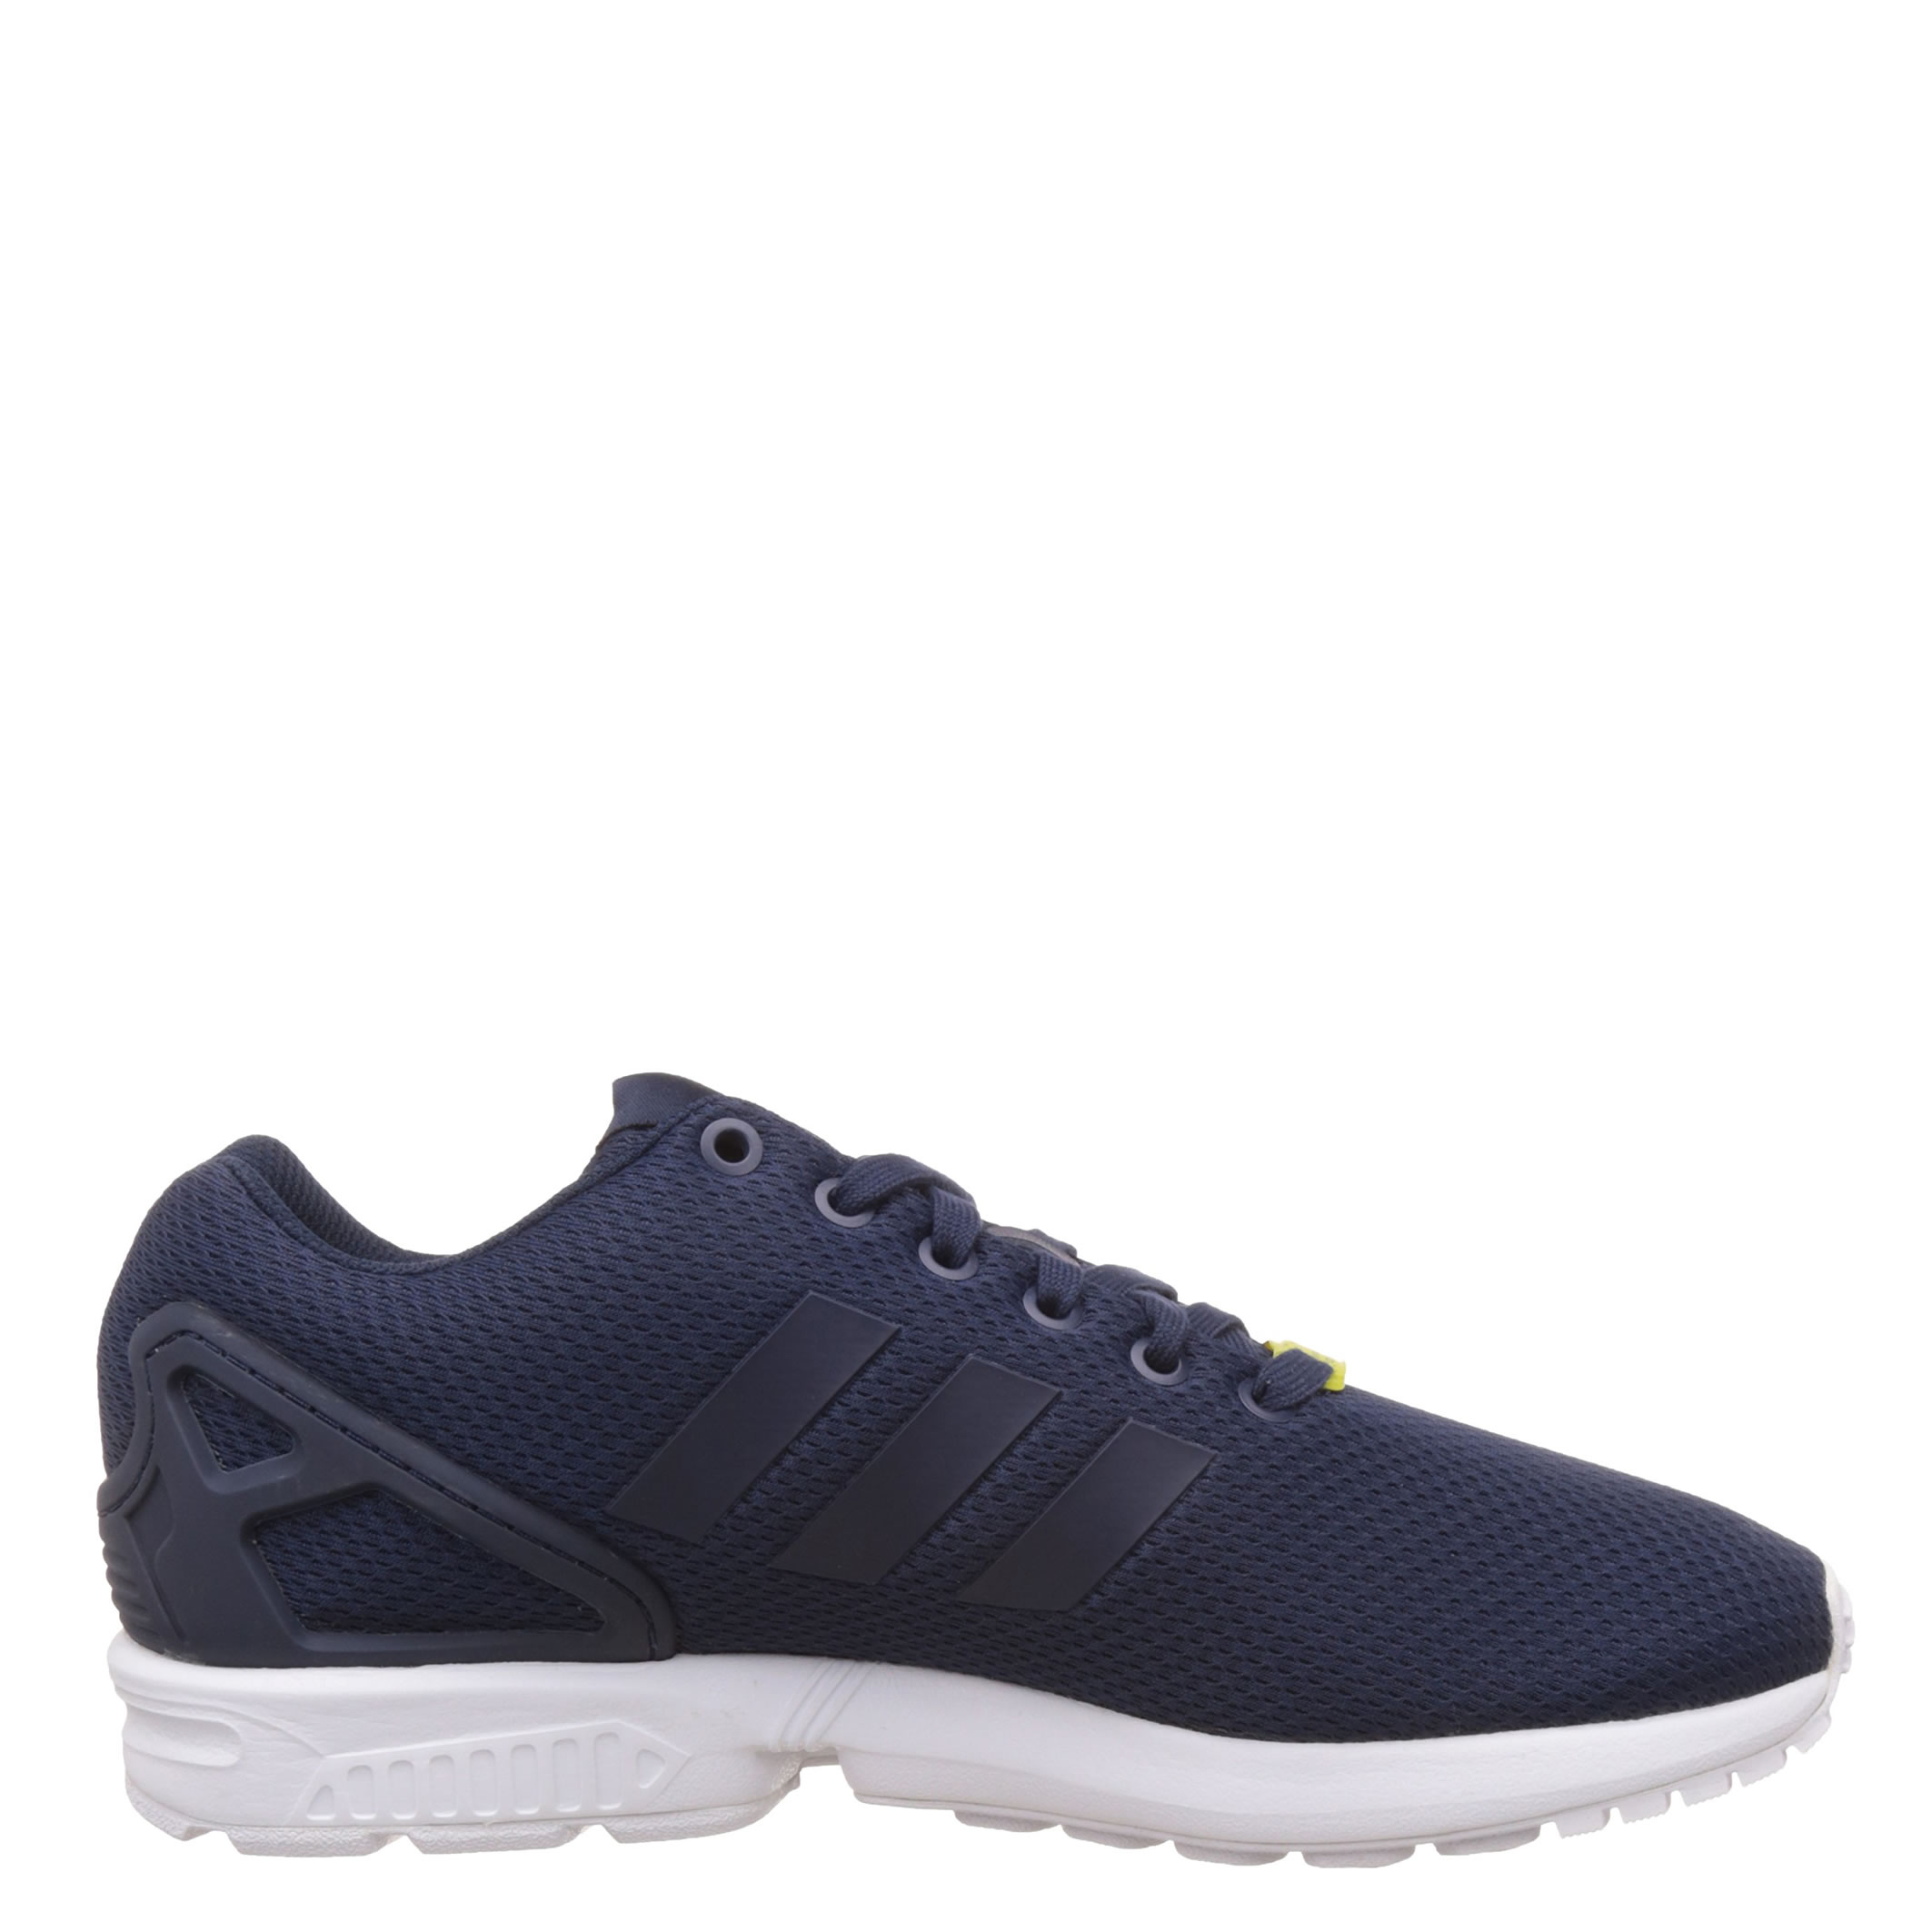 f82008e0ba386 Adidas ZX Flux Low-Top Trainers in Navy White